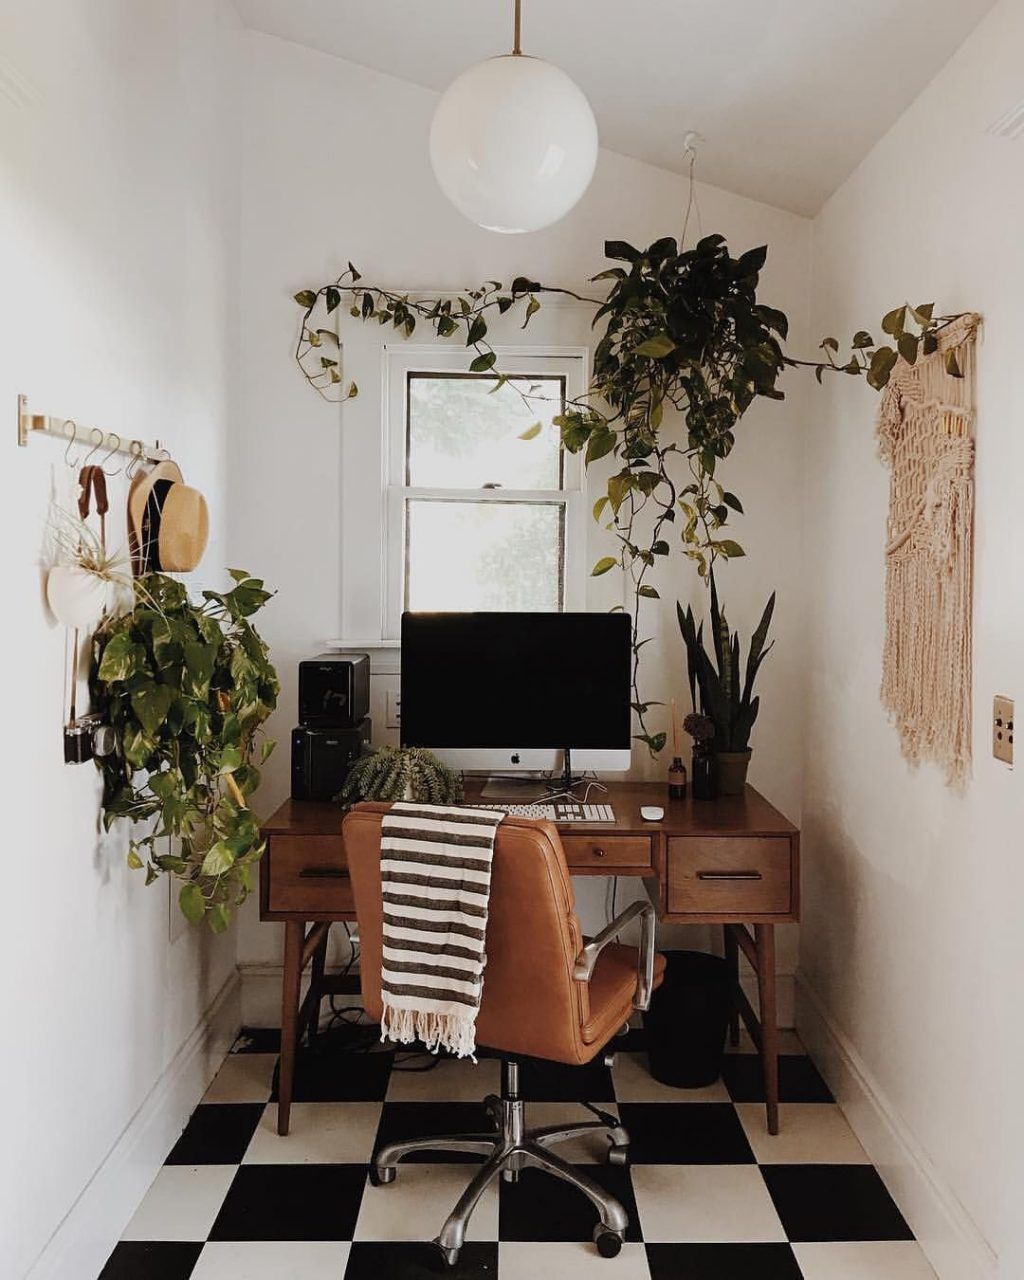 20 Inspiring Home Office Design Ideas For Small Spaces: 10 Inspiring Small Home Work Spaces